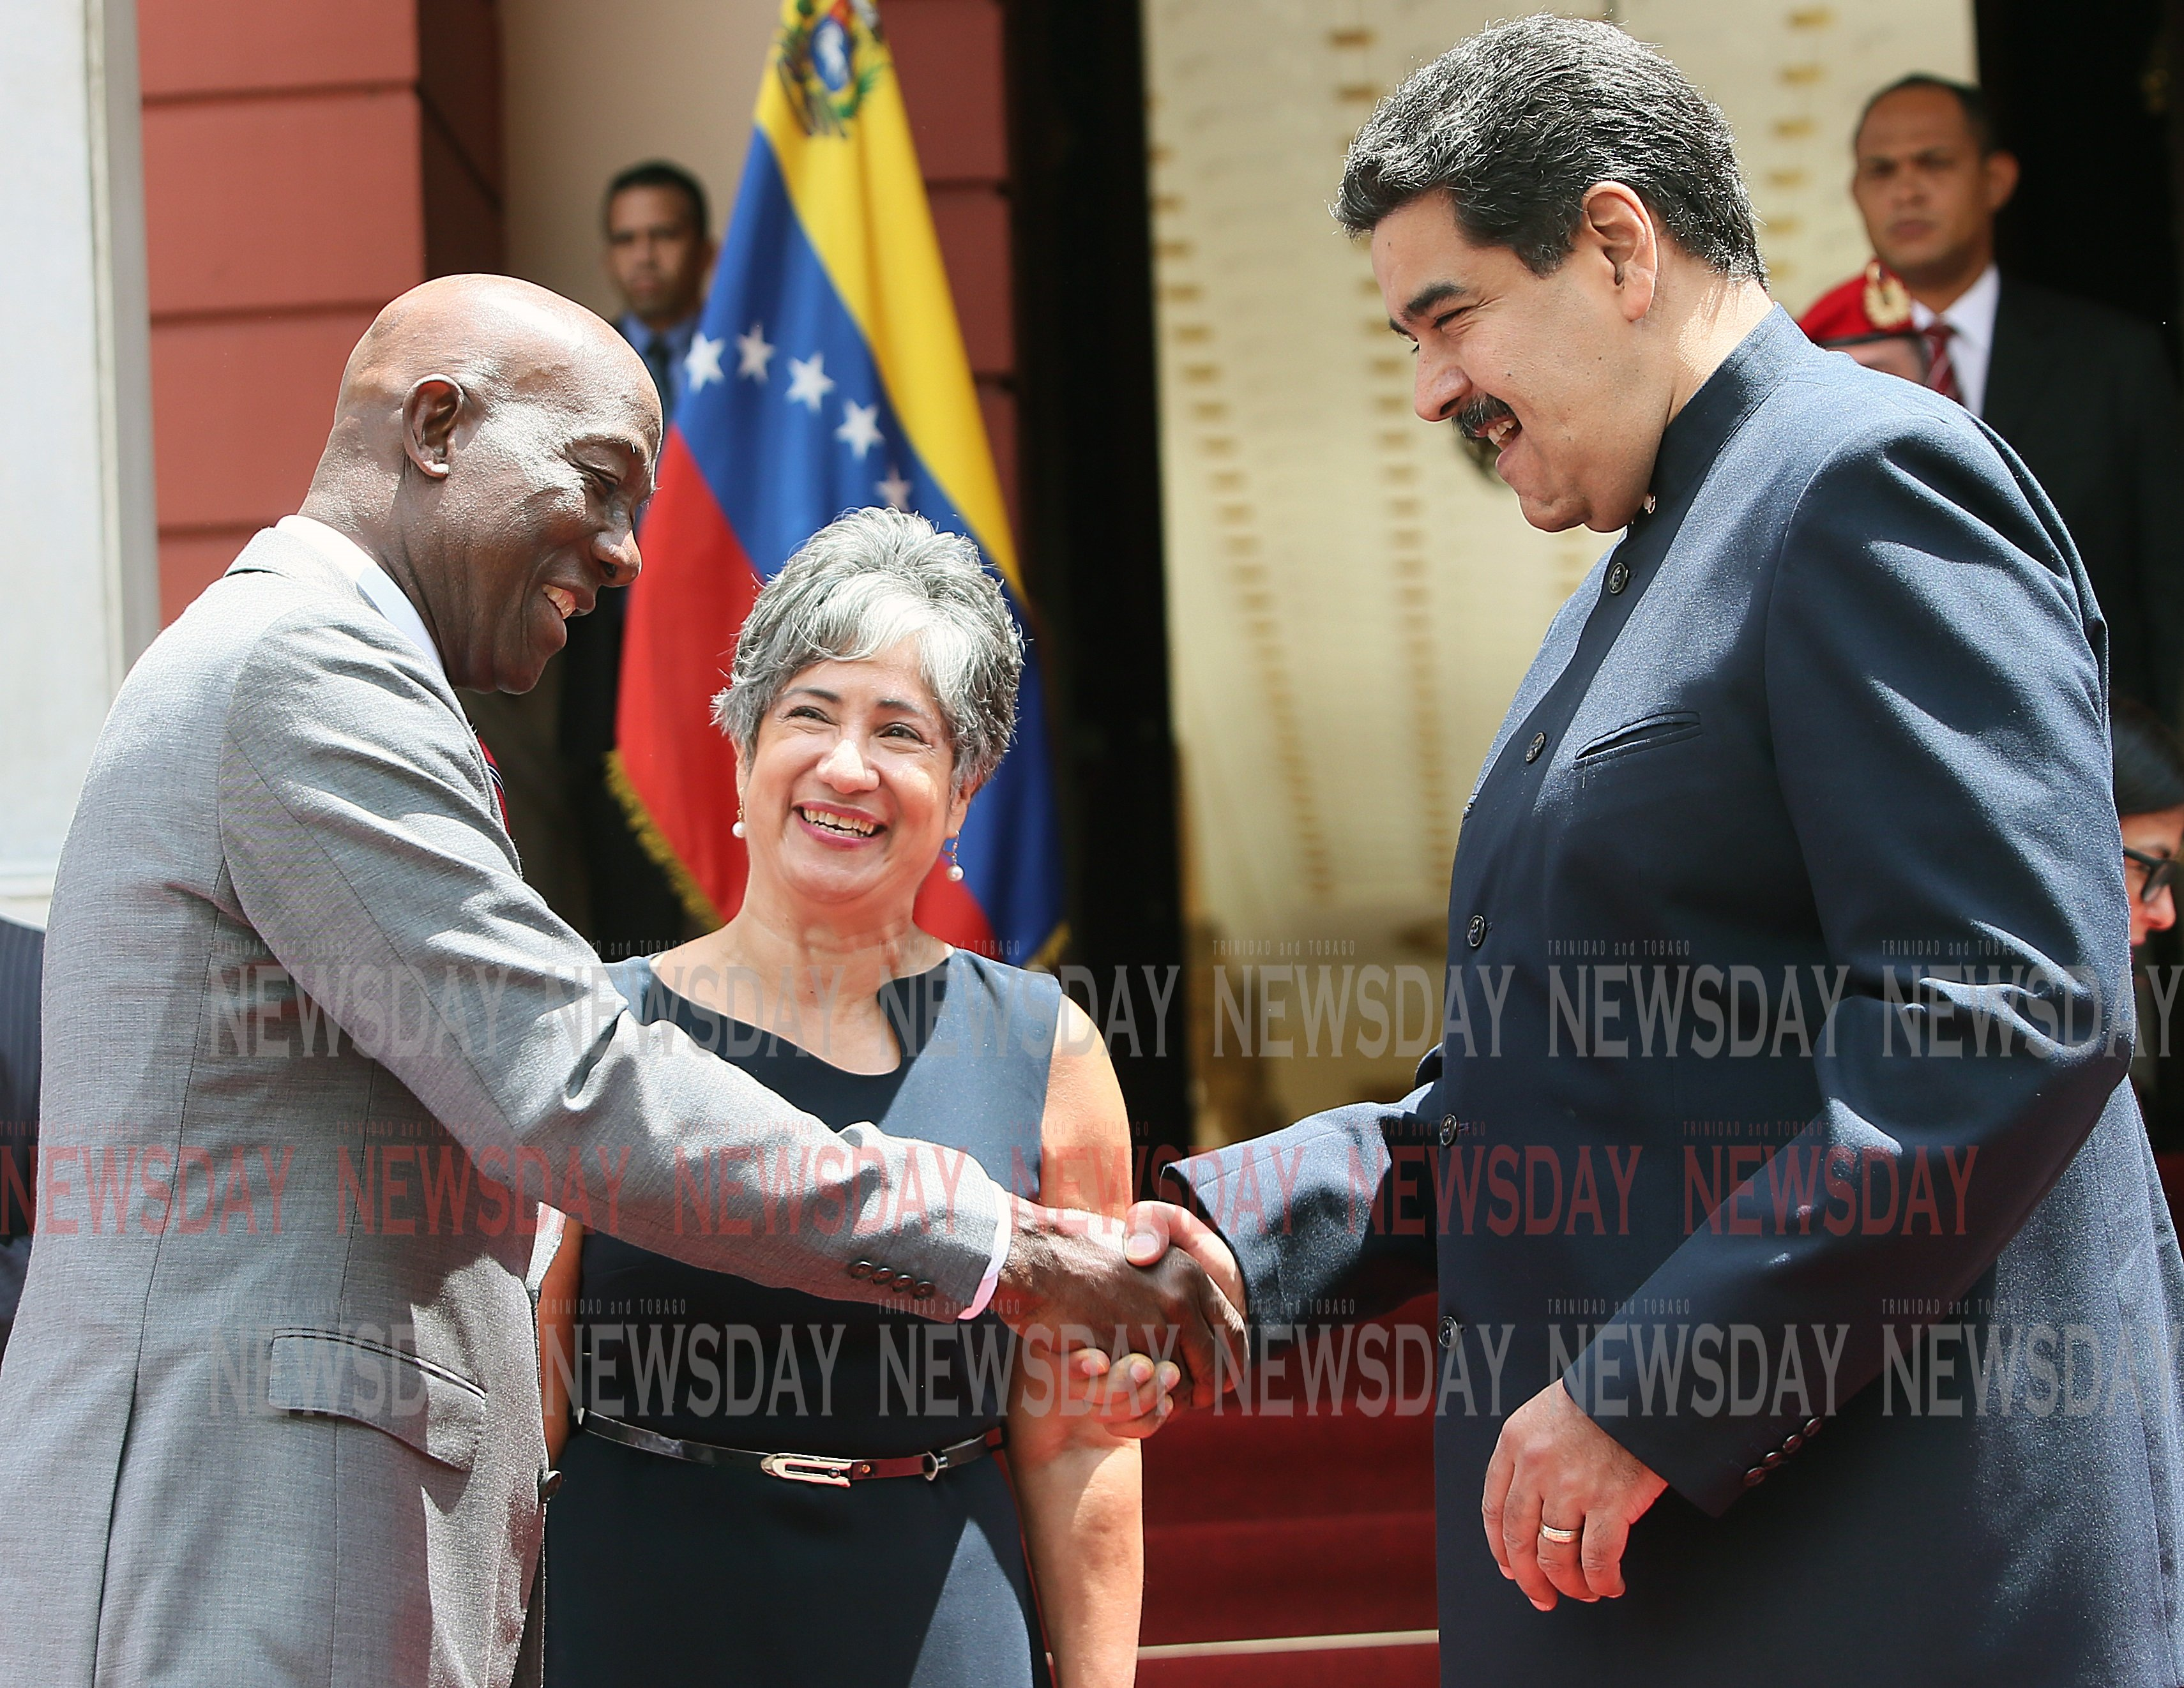 Energy partners: Venezuela's President Nicolas Maduro happily welcomes Prime Minister Dr Keith Rowley to the Miraflores presidential palace in Caracas where the two leaders yesterday sealed a deal for TT to process natural gas in the Dragon field. PHOTO BY AZLAN MOHAMMED